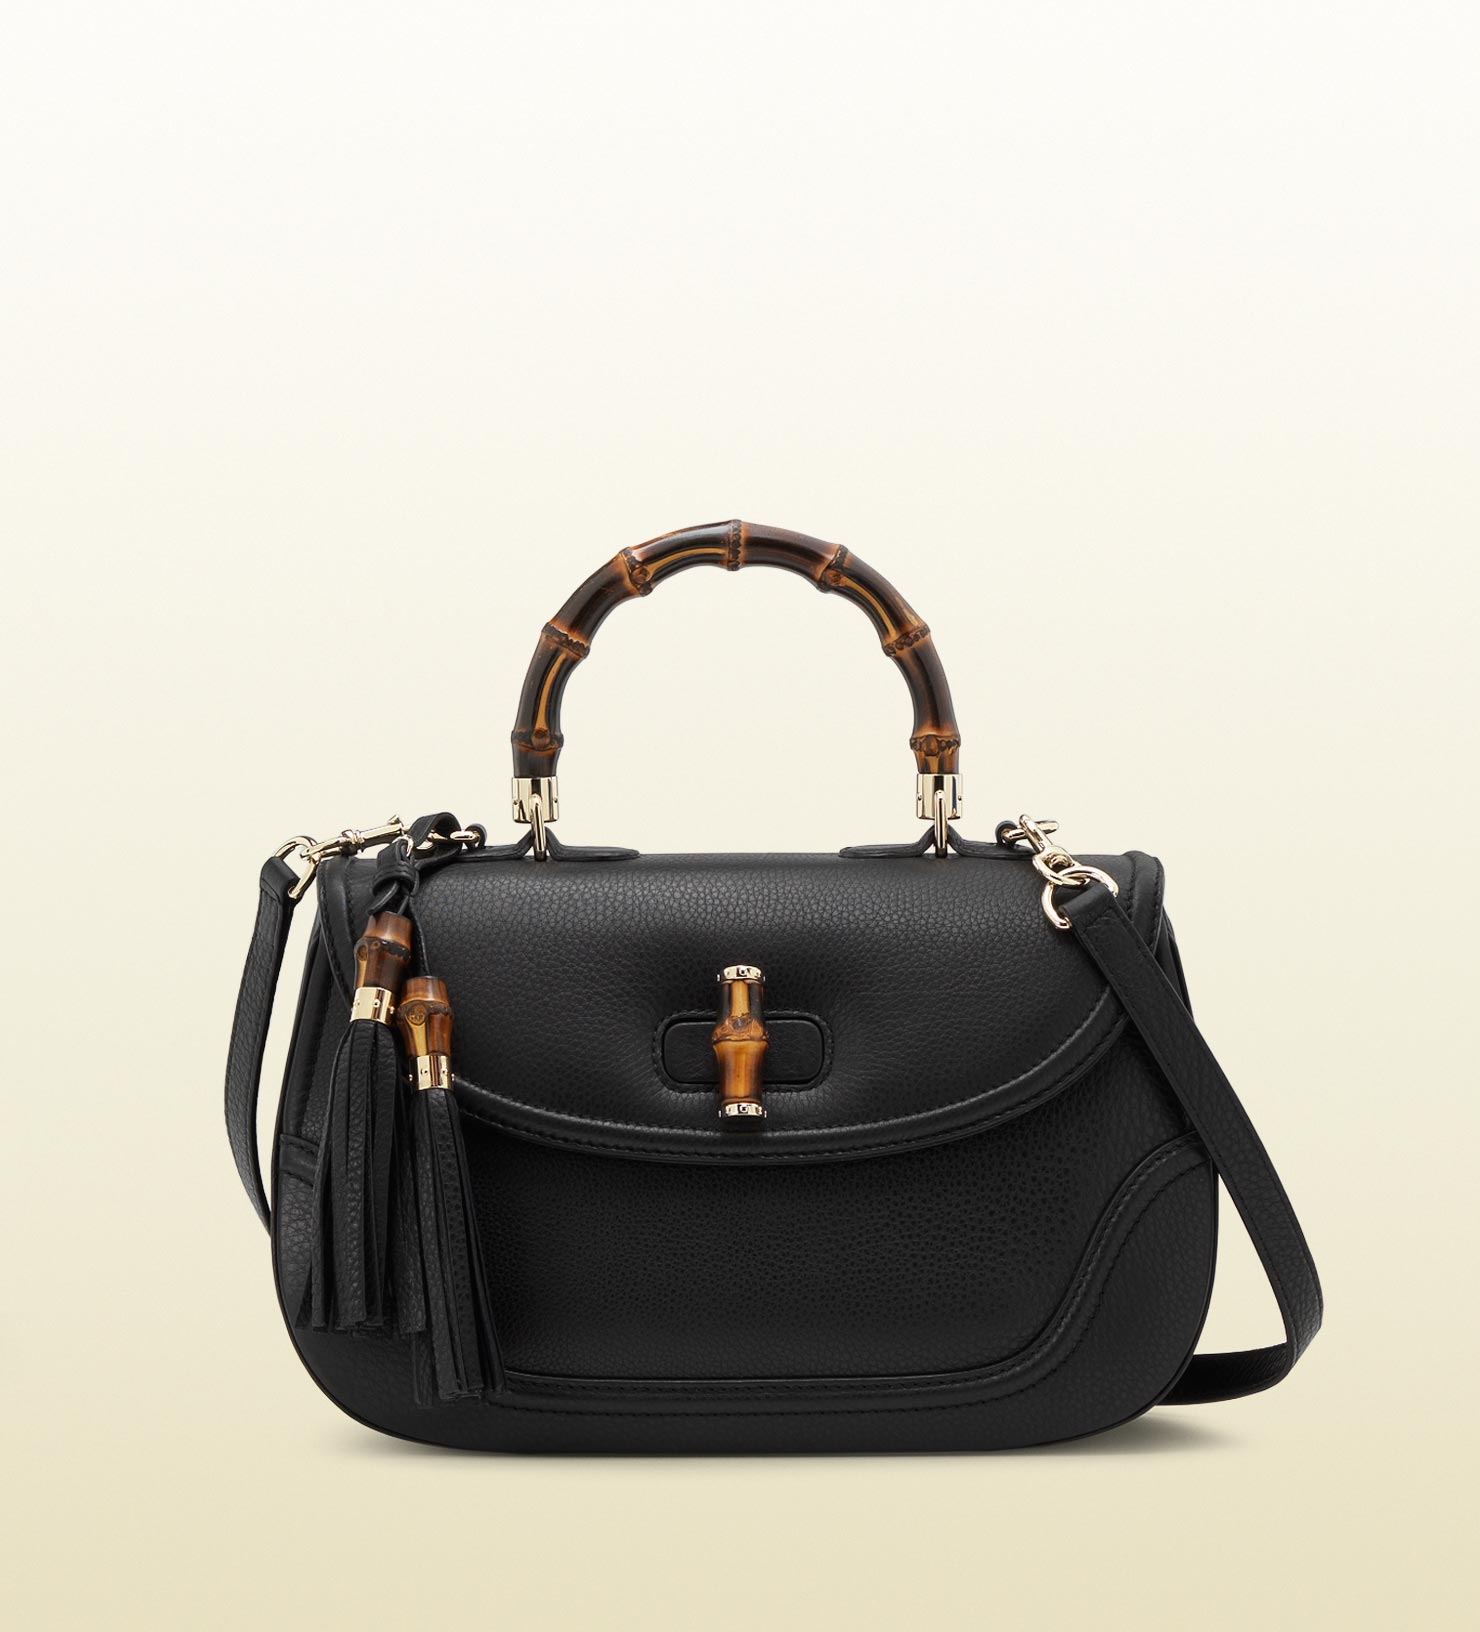 gucci new bamboo leather top handle bag in black bamboo